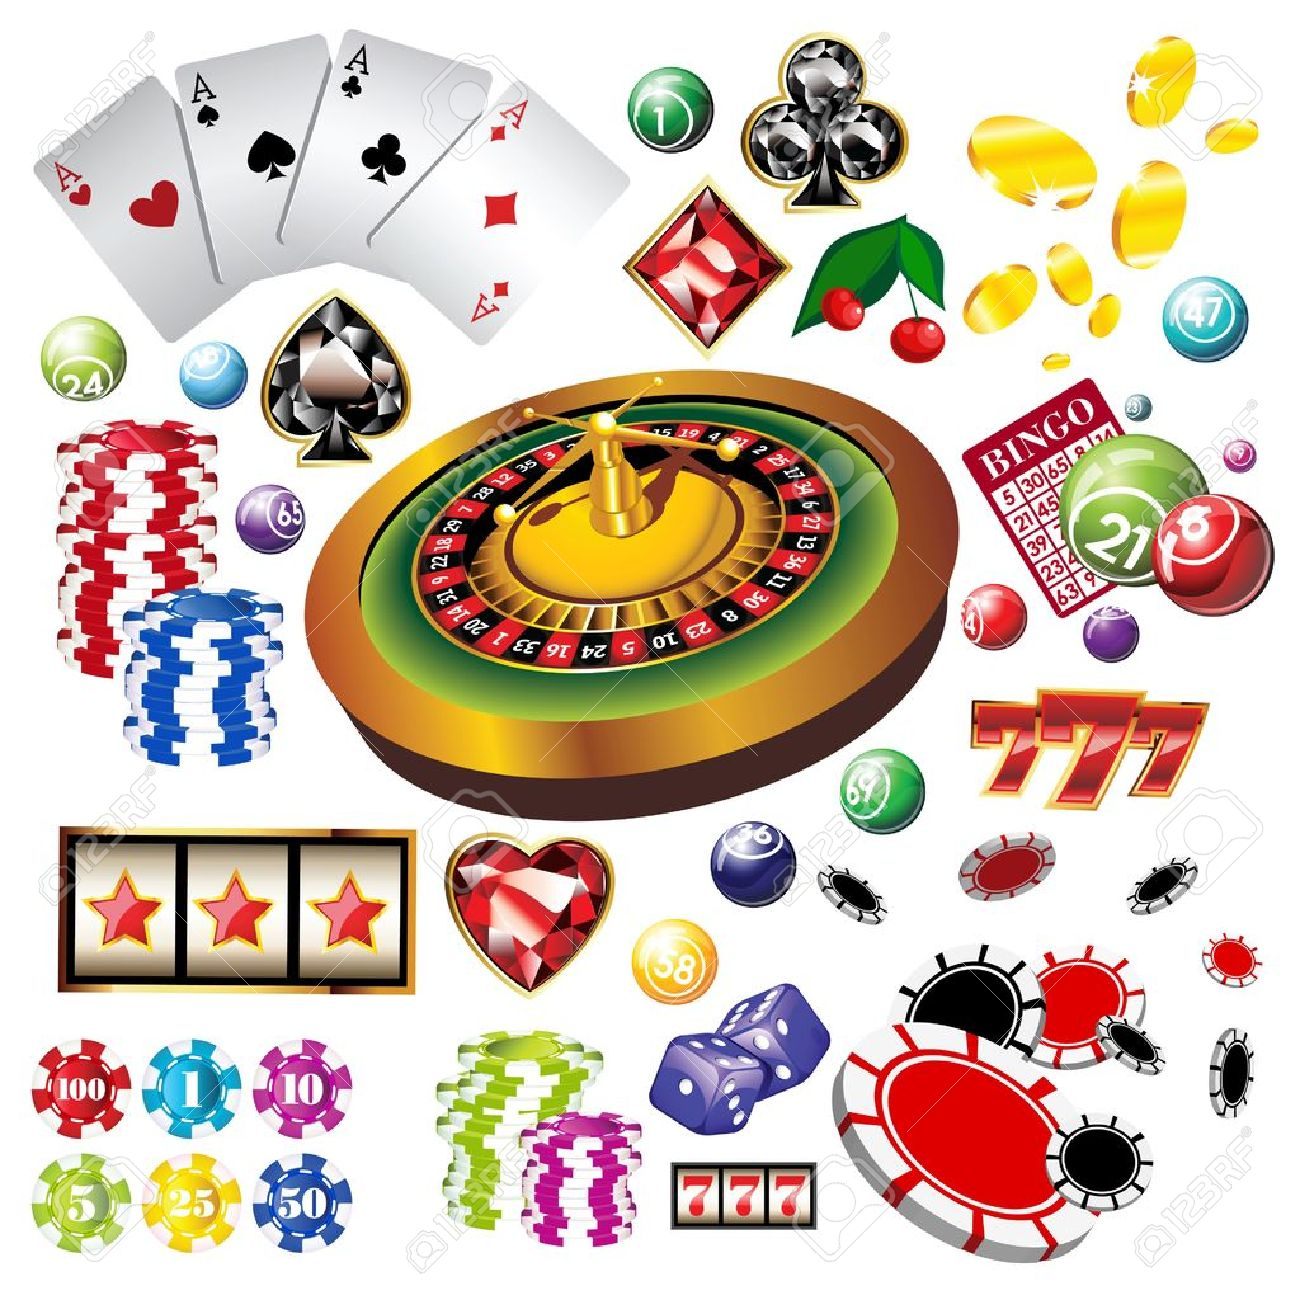 The set of vector casino elements or icons including roulette wheel, playing cards, chips, dice and more - 12820044